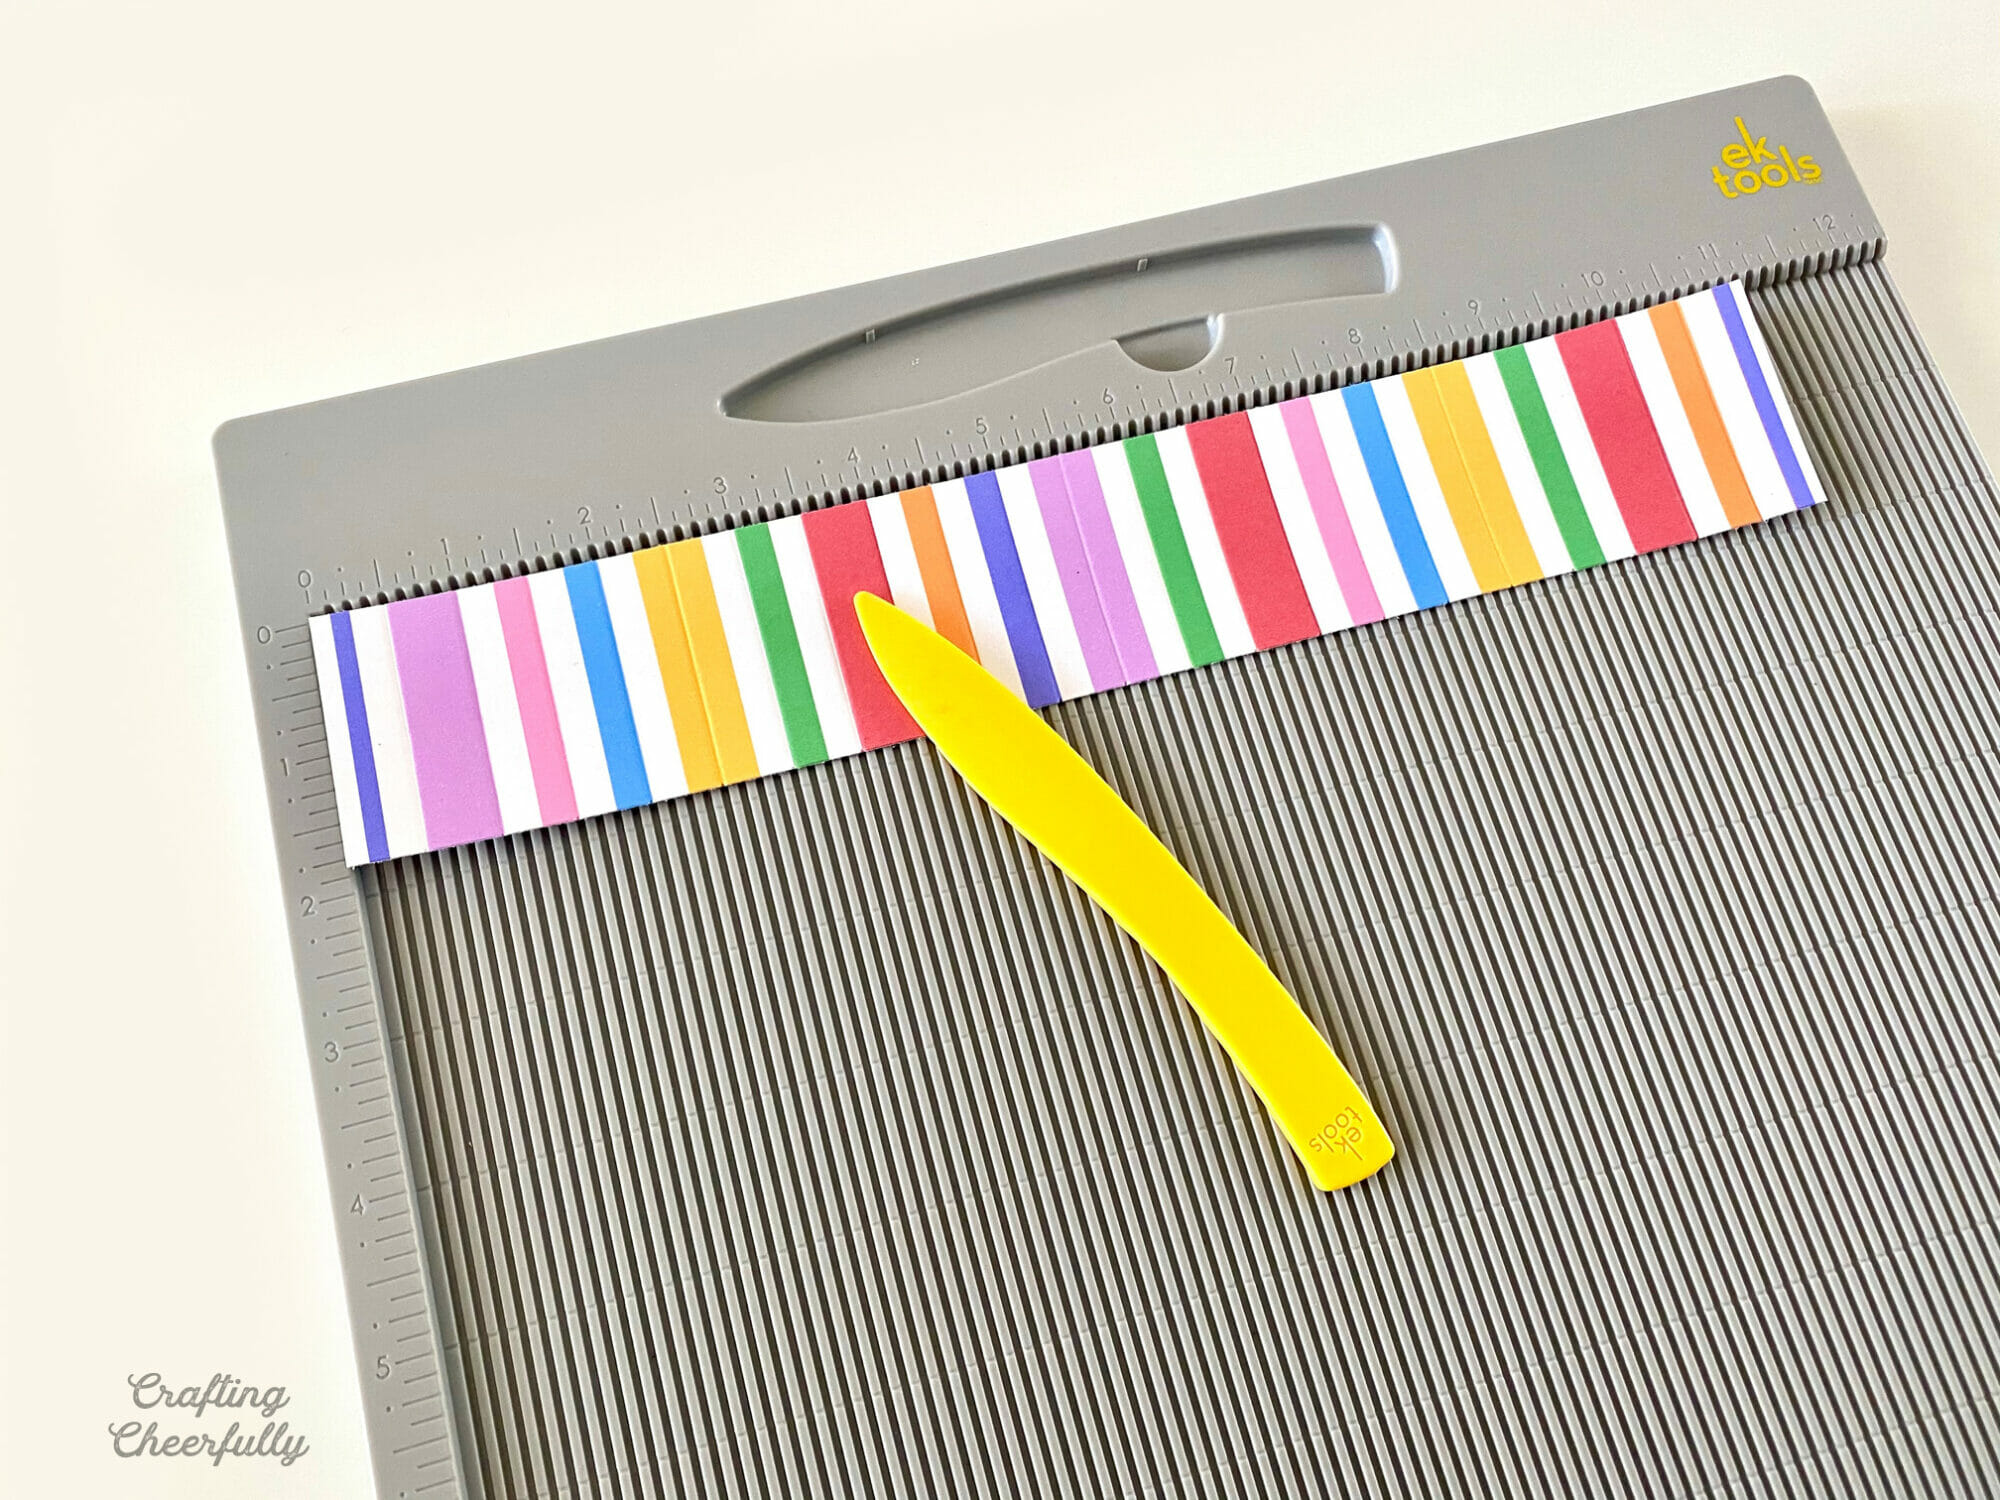 Piece of colorfully striped paper on a scoring board with a yellow stylus.